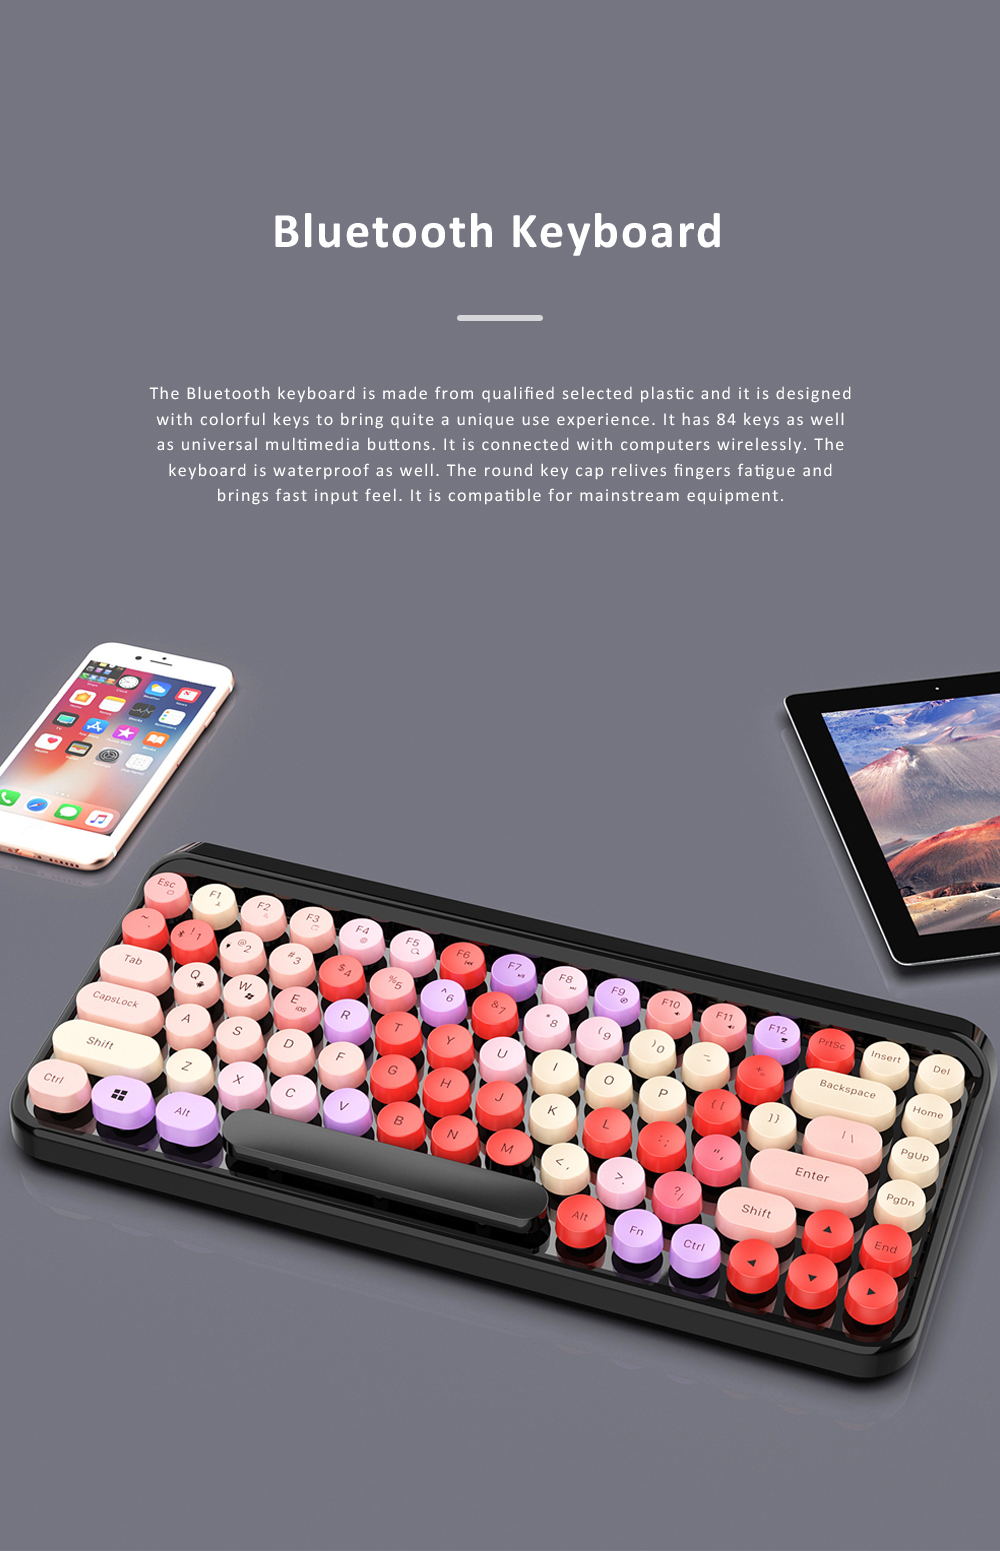 Retro Colorful Punk Bluetooth Keyboard for Office Household Use Waterproof and Mute Keyboard Compatible for Windows, iOS, Android 0